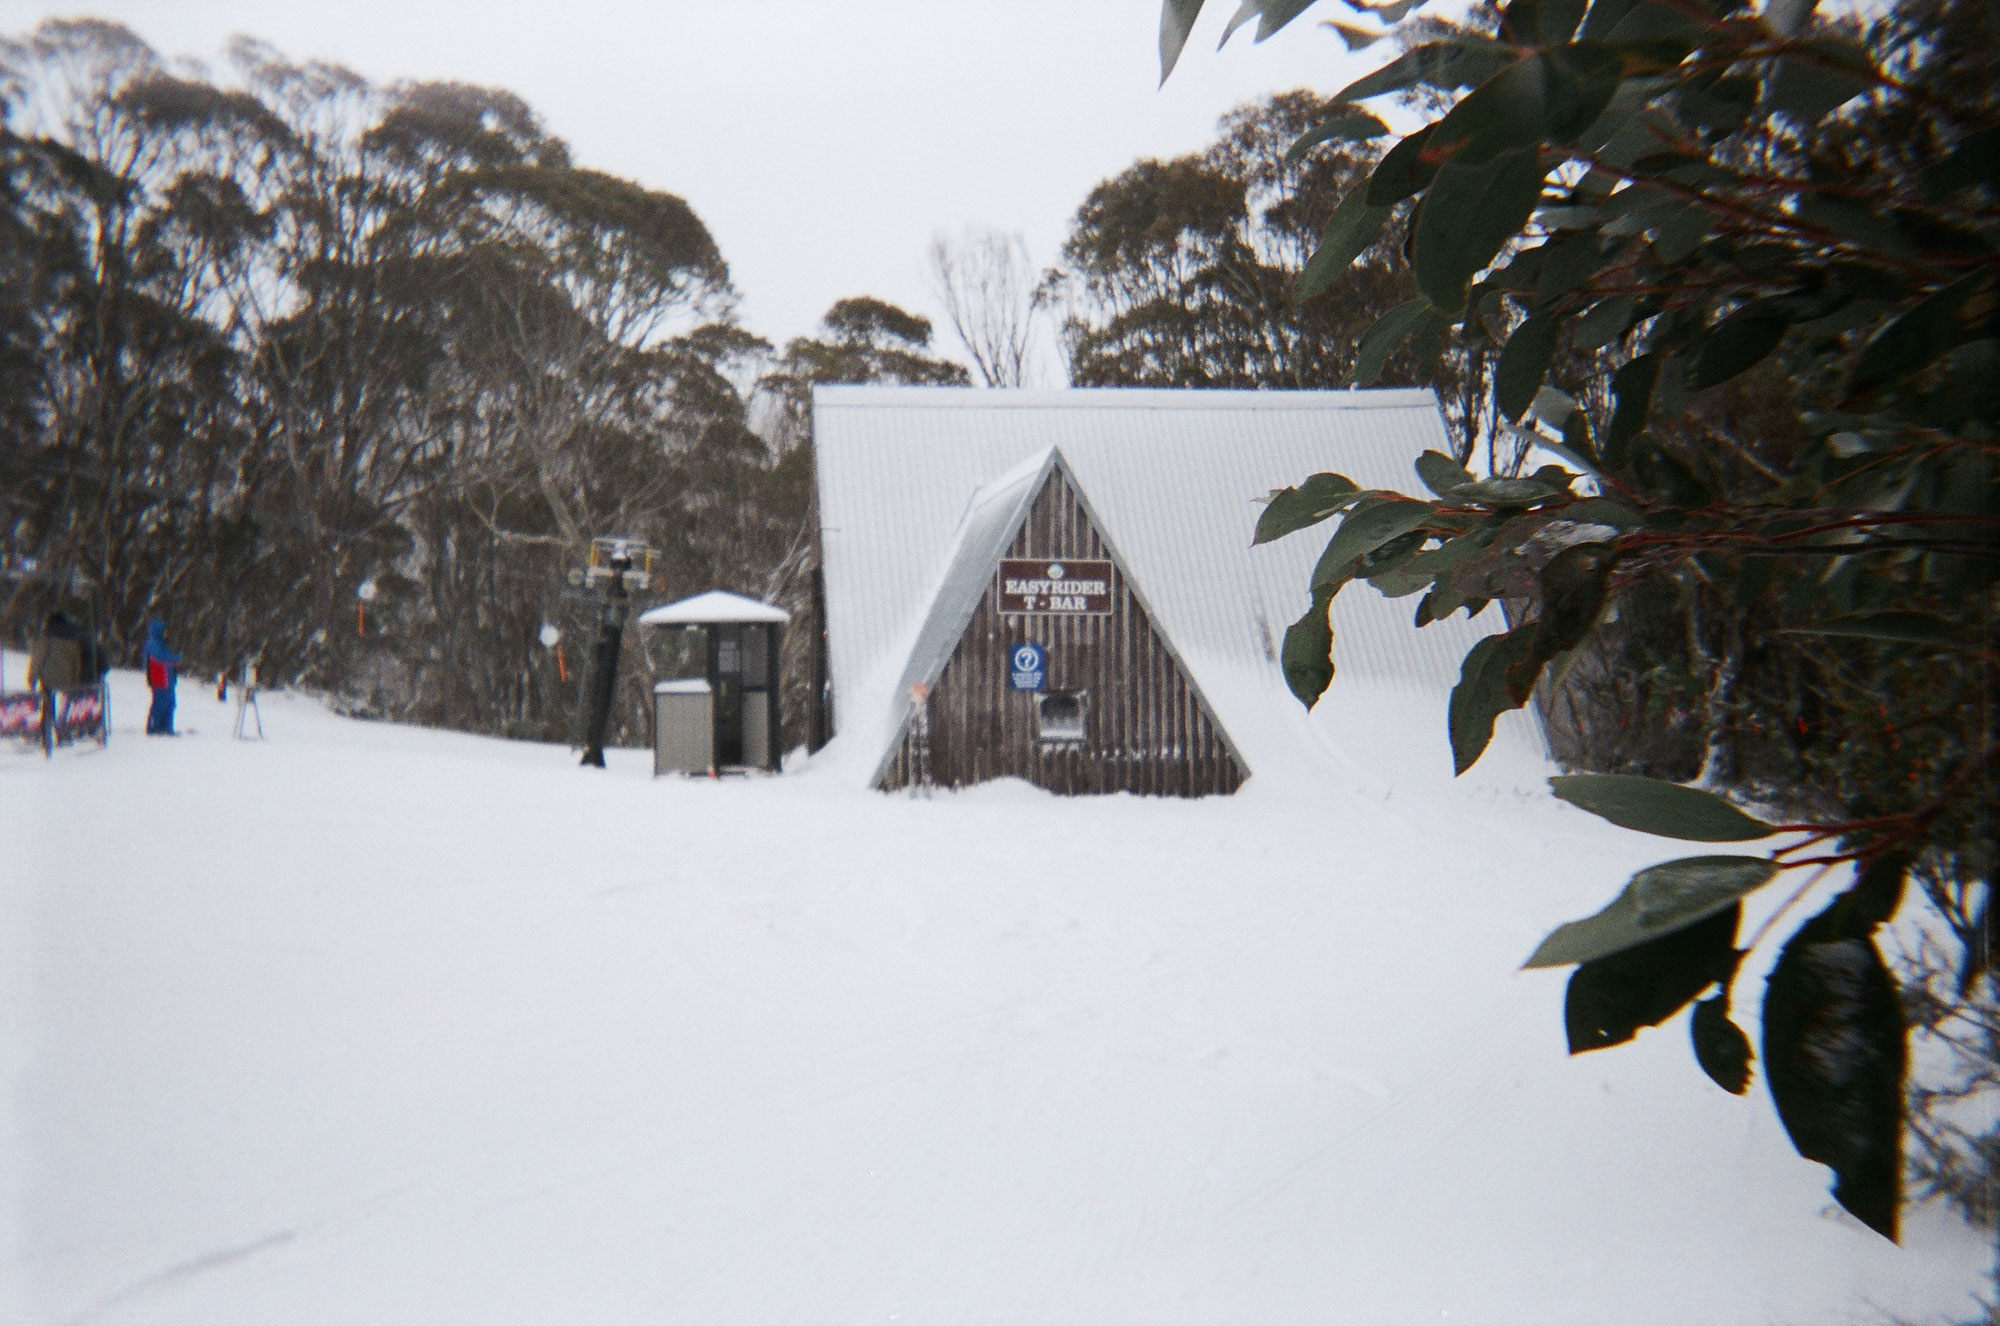 Thredbo Resort